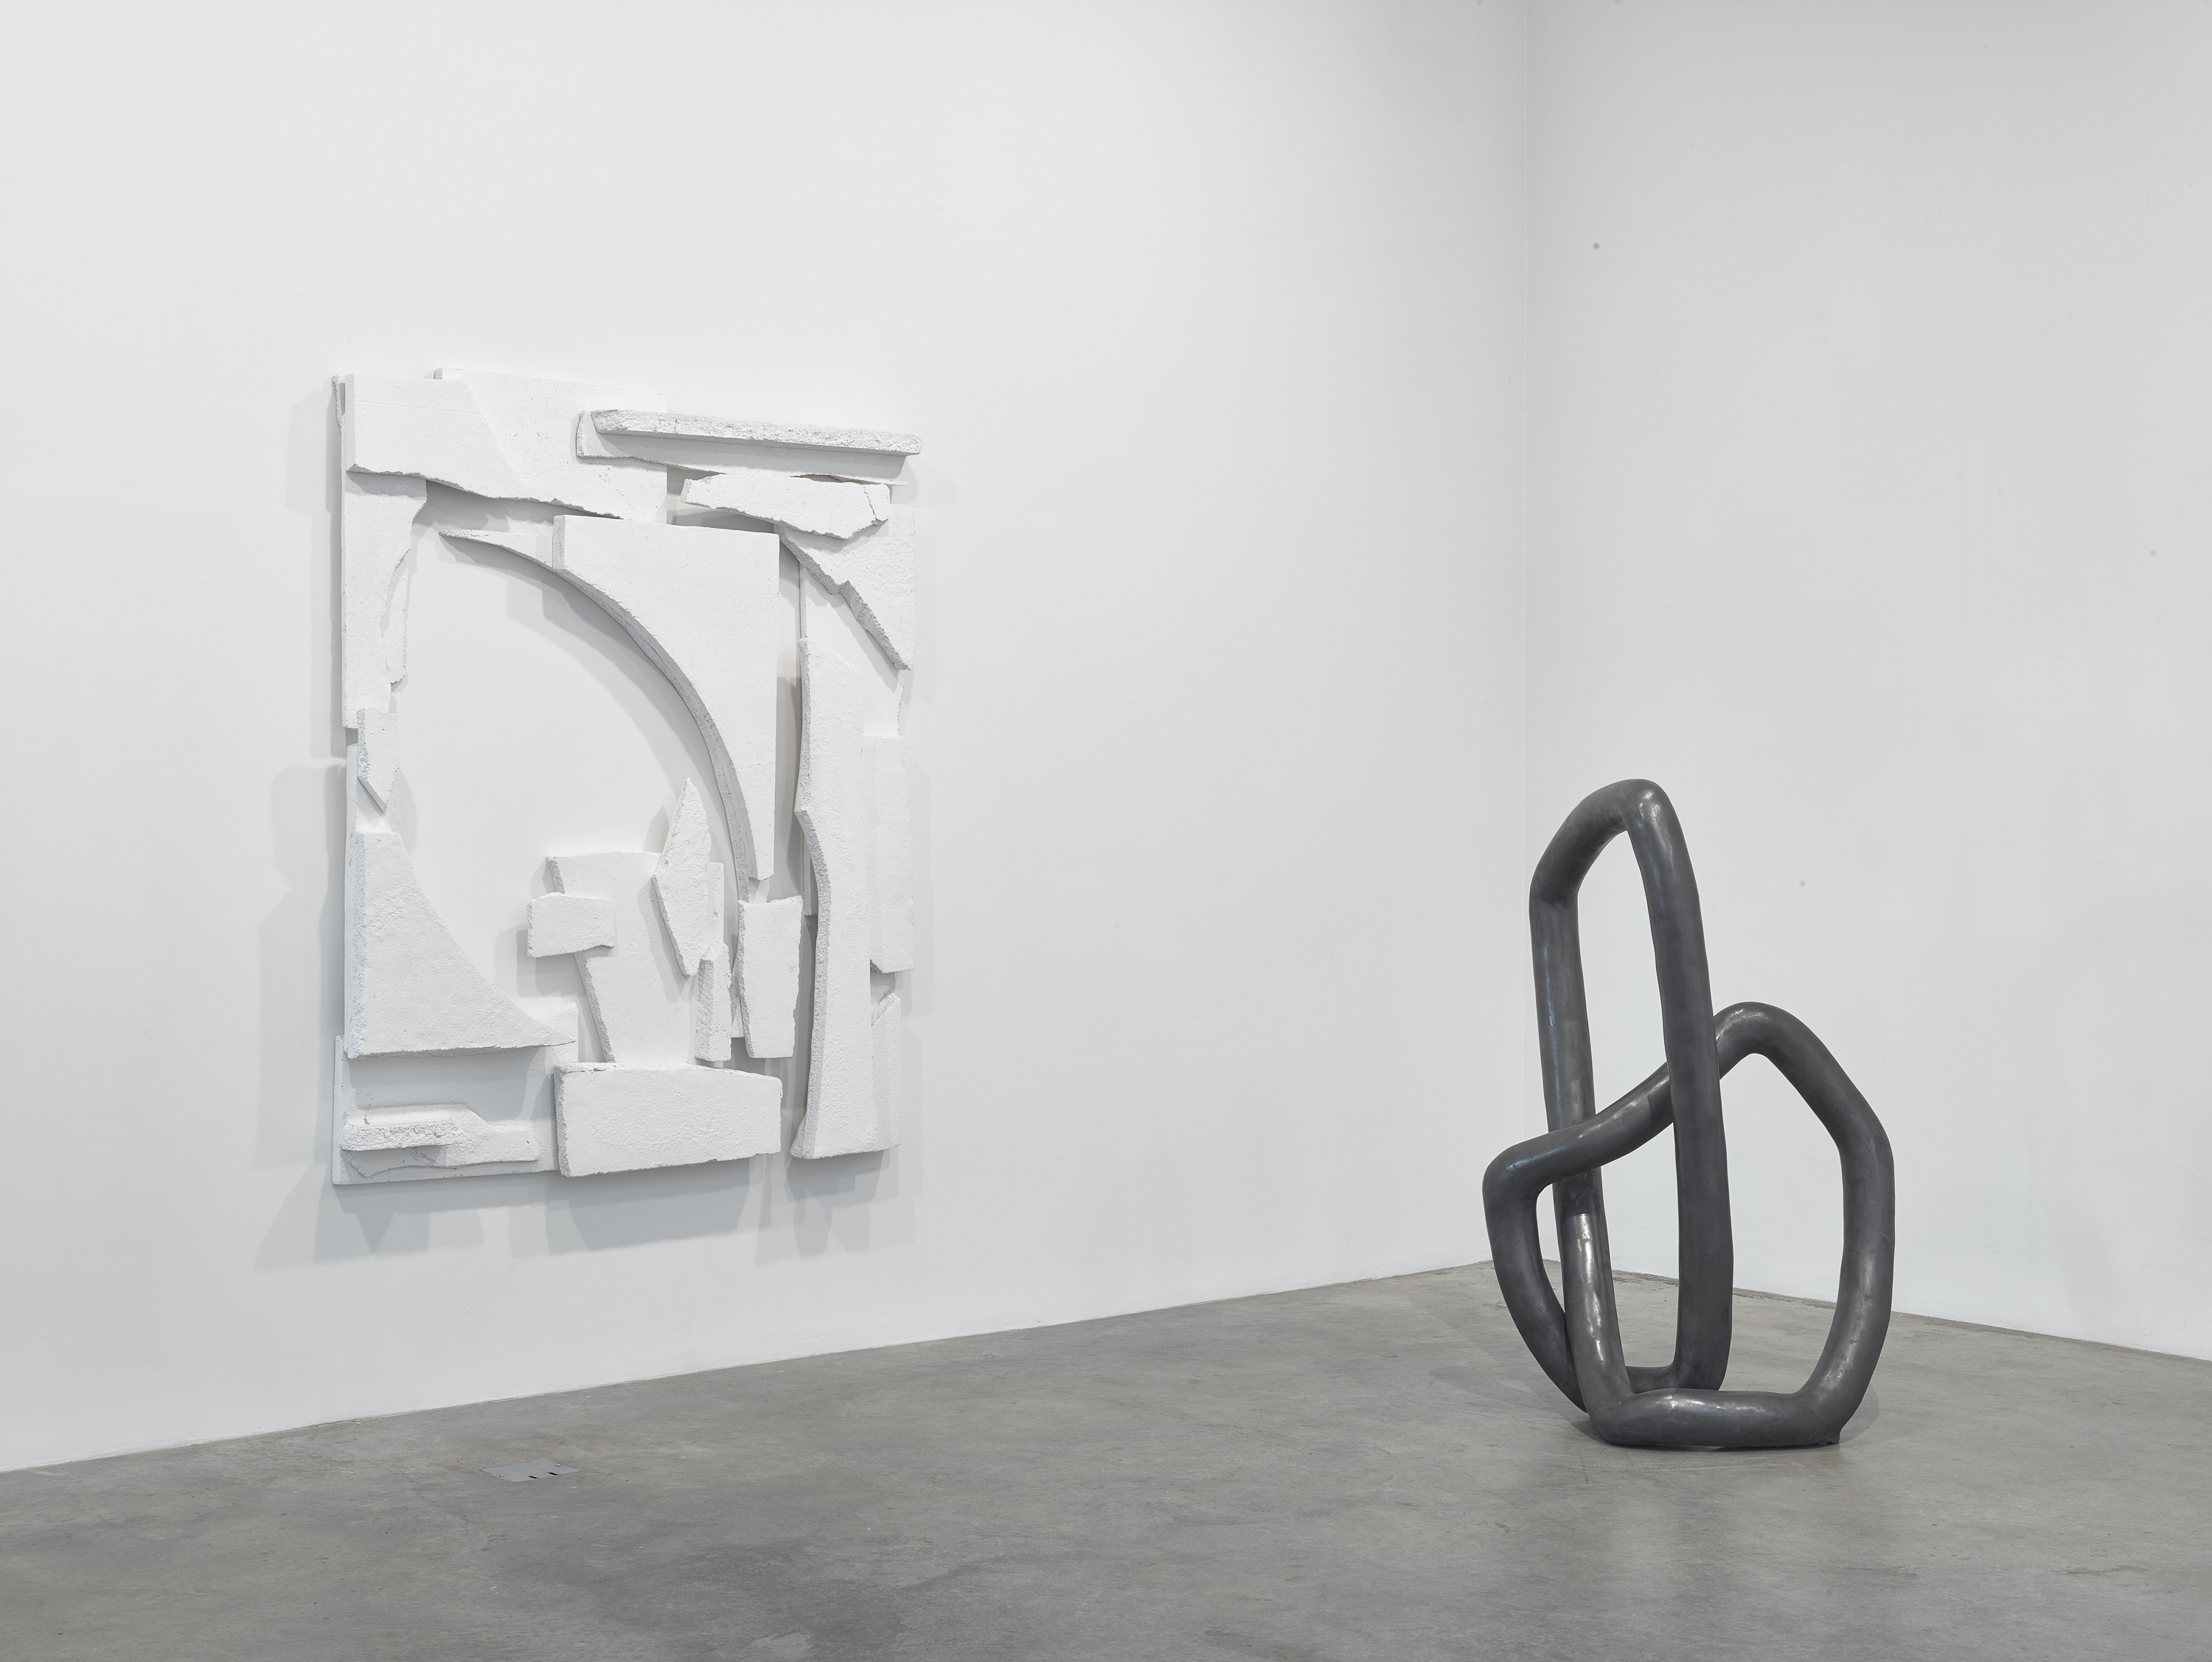 Installation view, Carolyn Salas at Koenig & Clinton, New York, 2015. Courtesy of Koenig & Clinton.